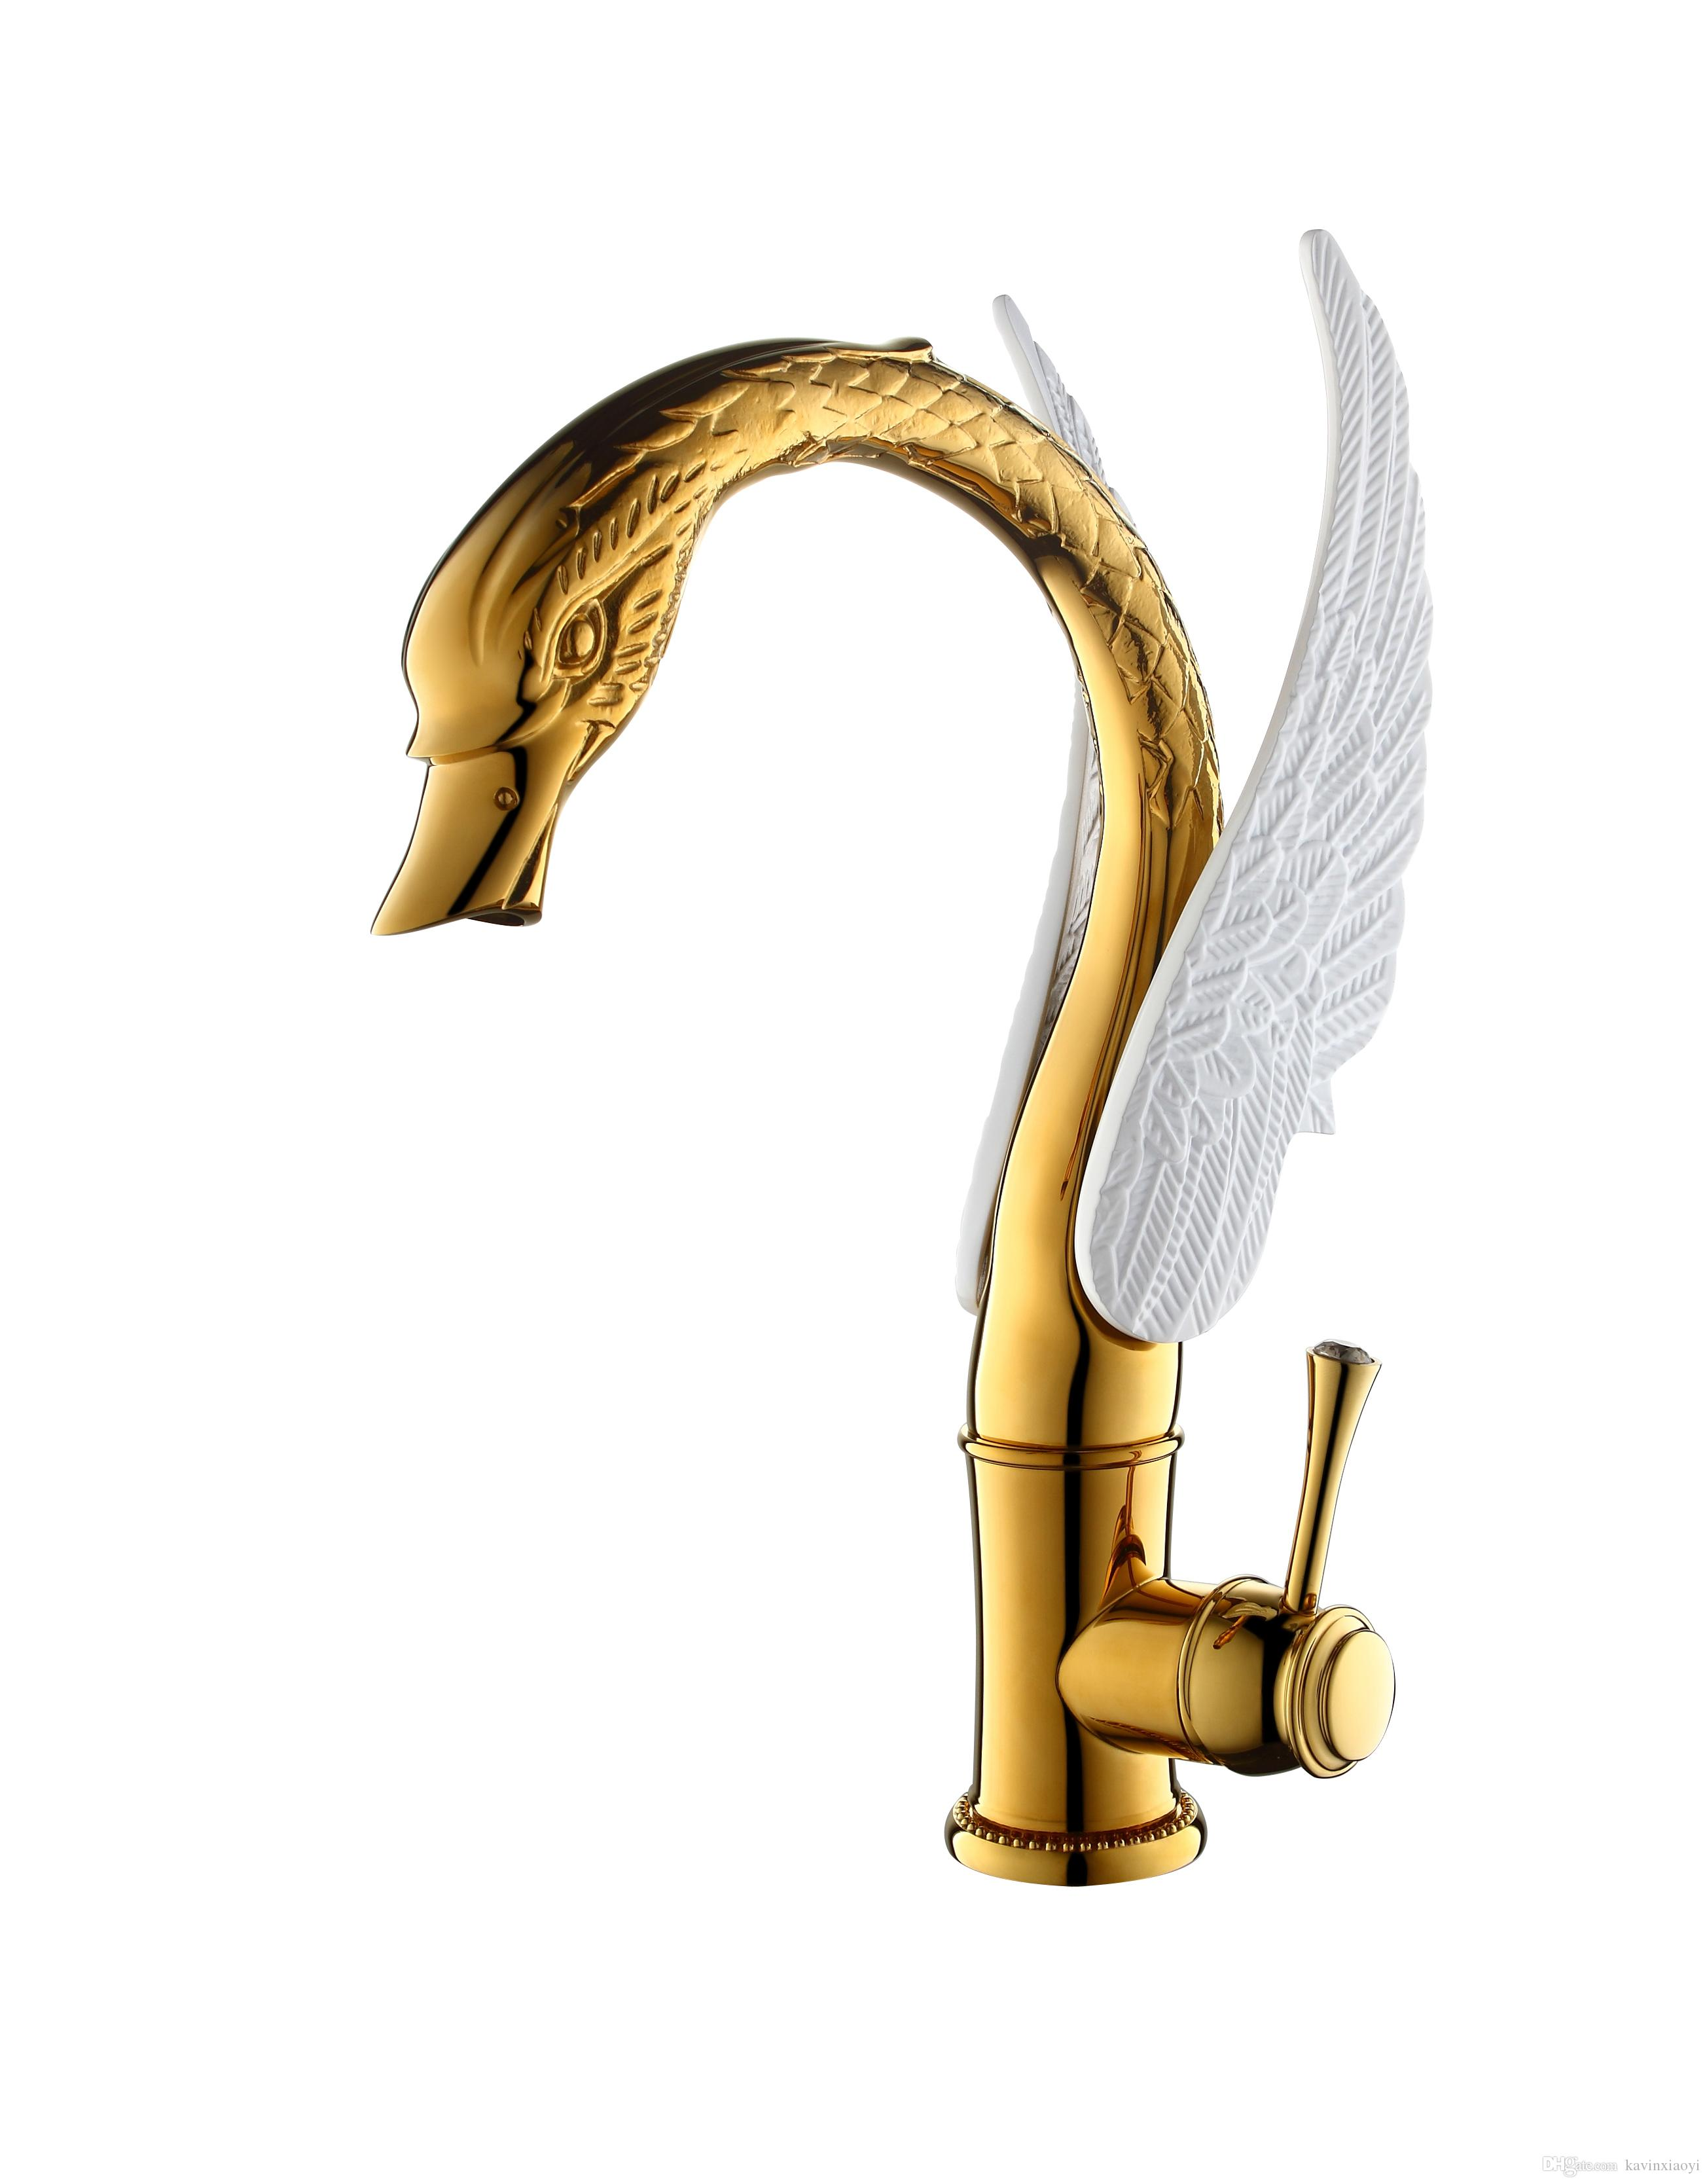 GOLD +White color bathroom basin vessel sink swan tall mixer faucet crystal handle deck mounted single hole